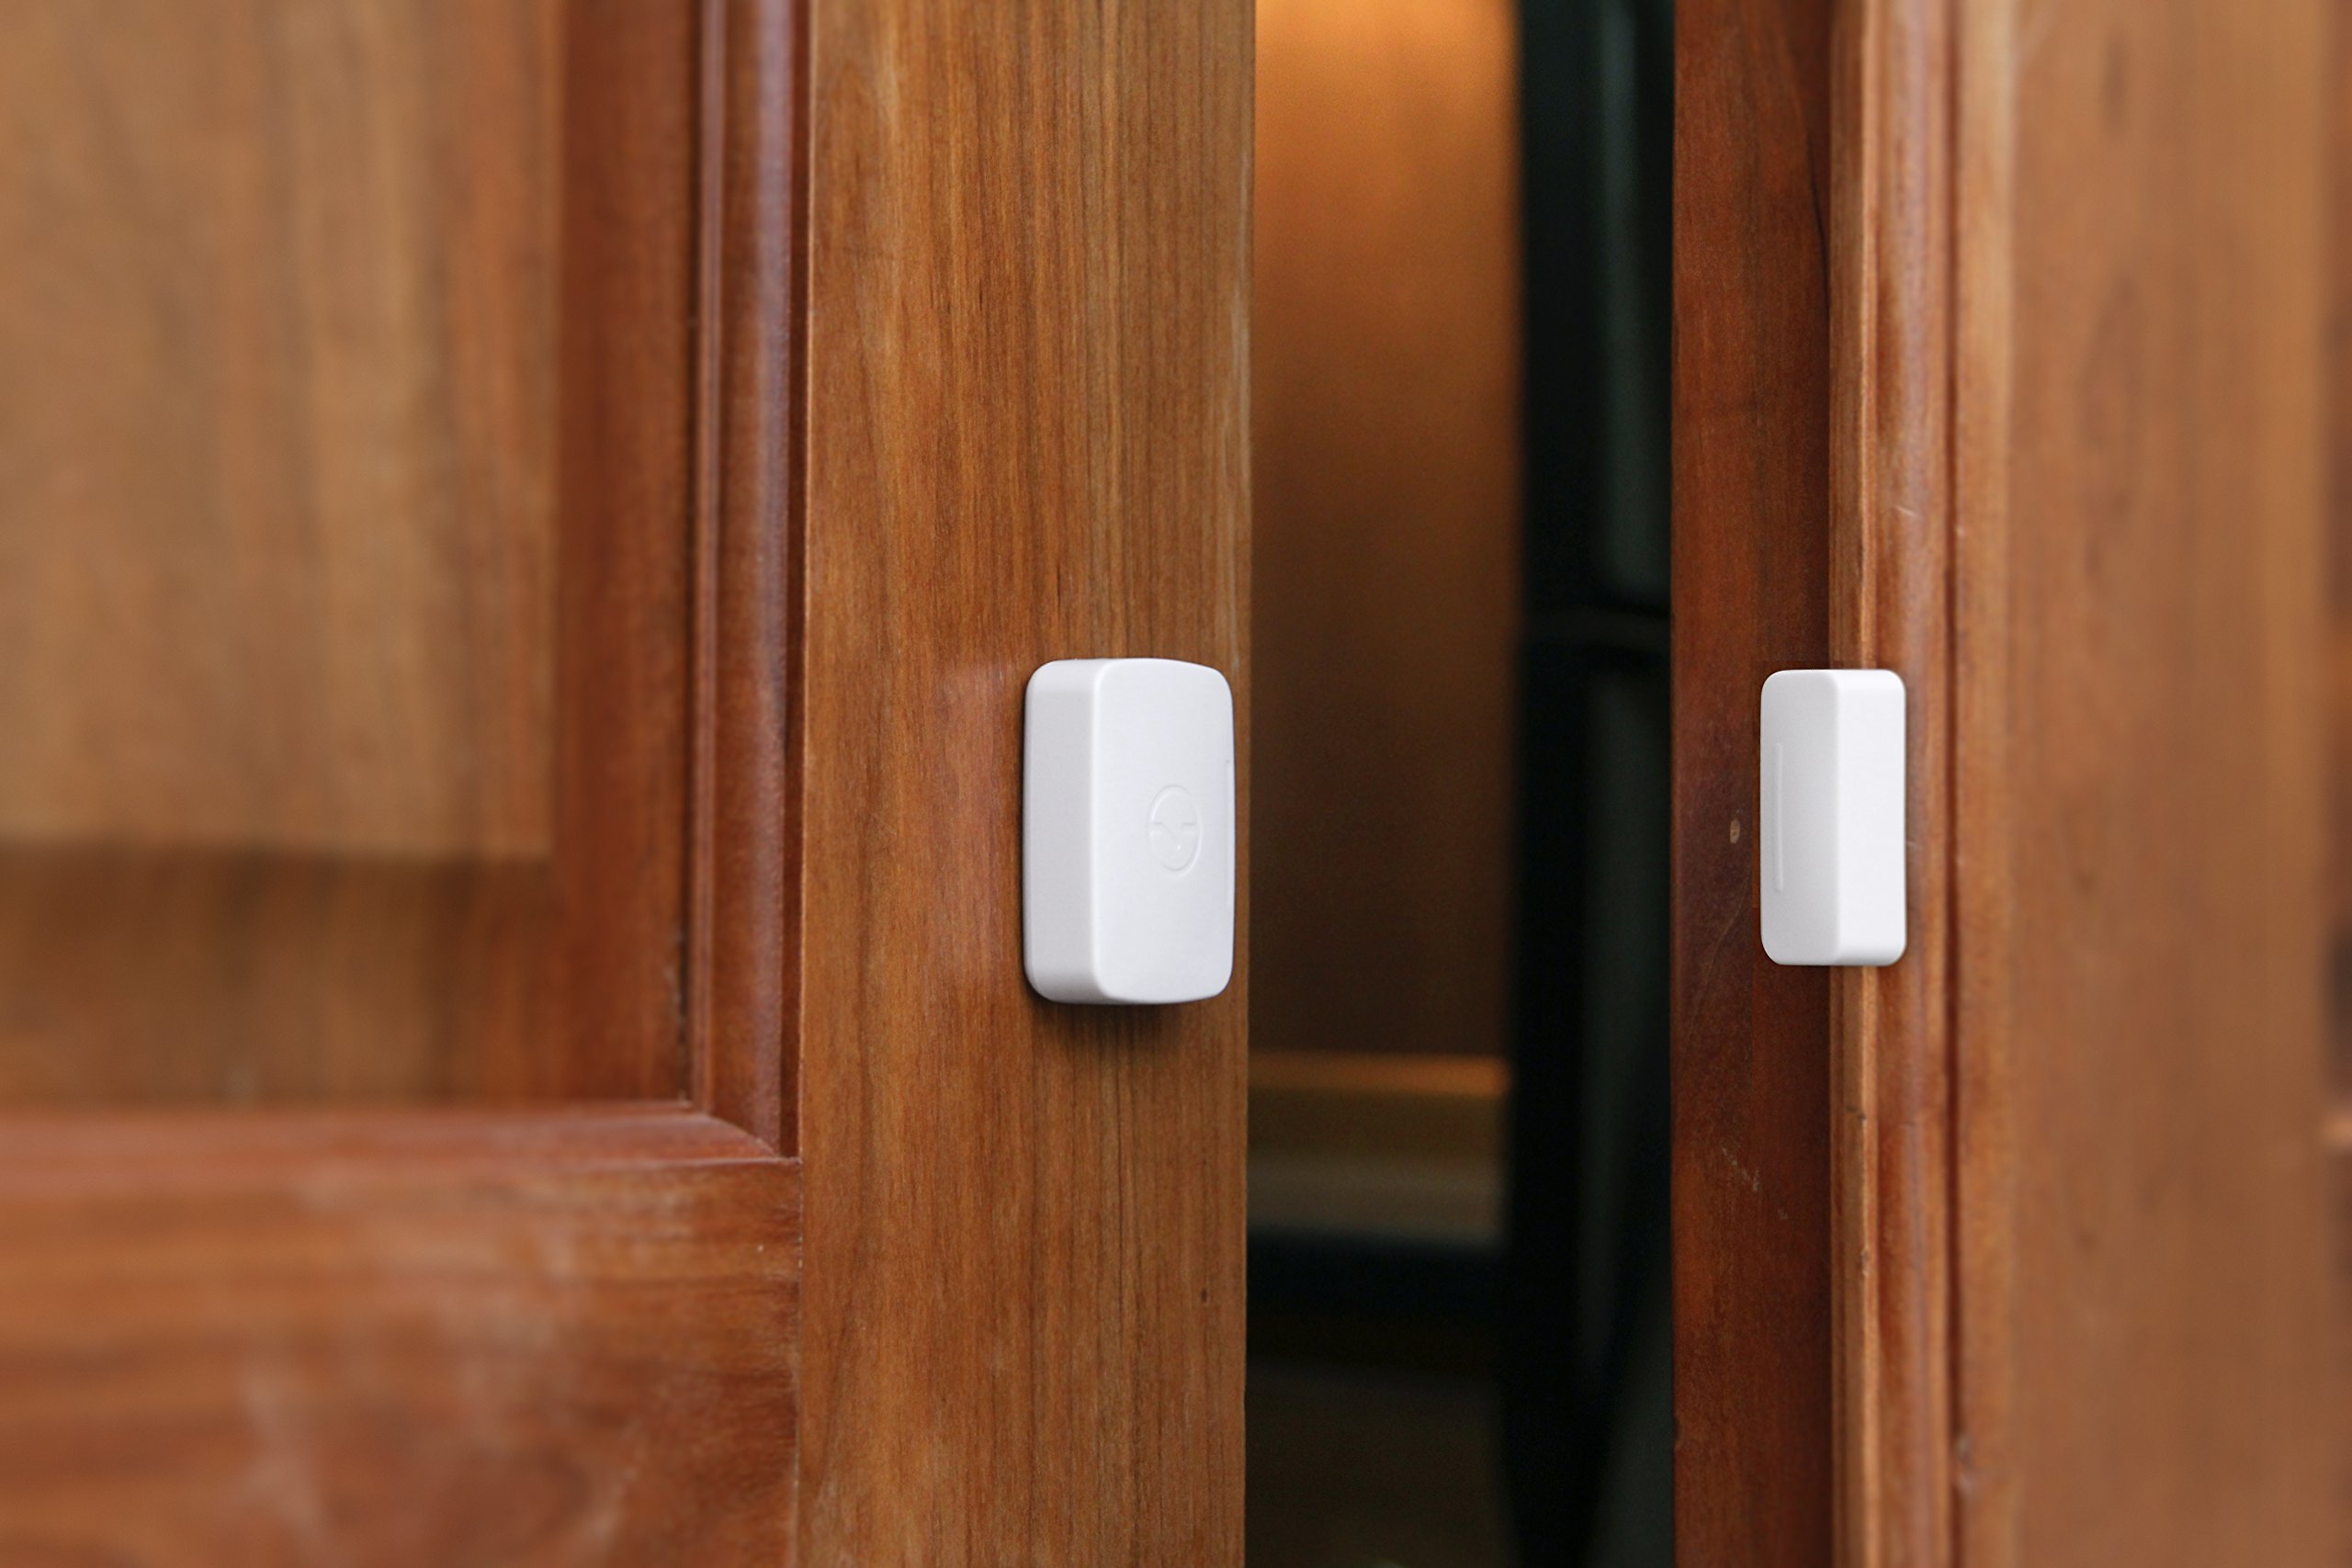 smart home front samsung updates news smartthings doors garage powers the door